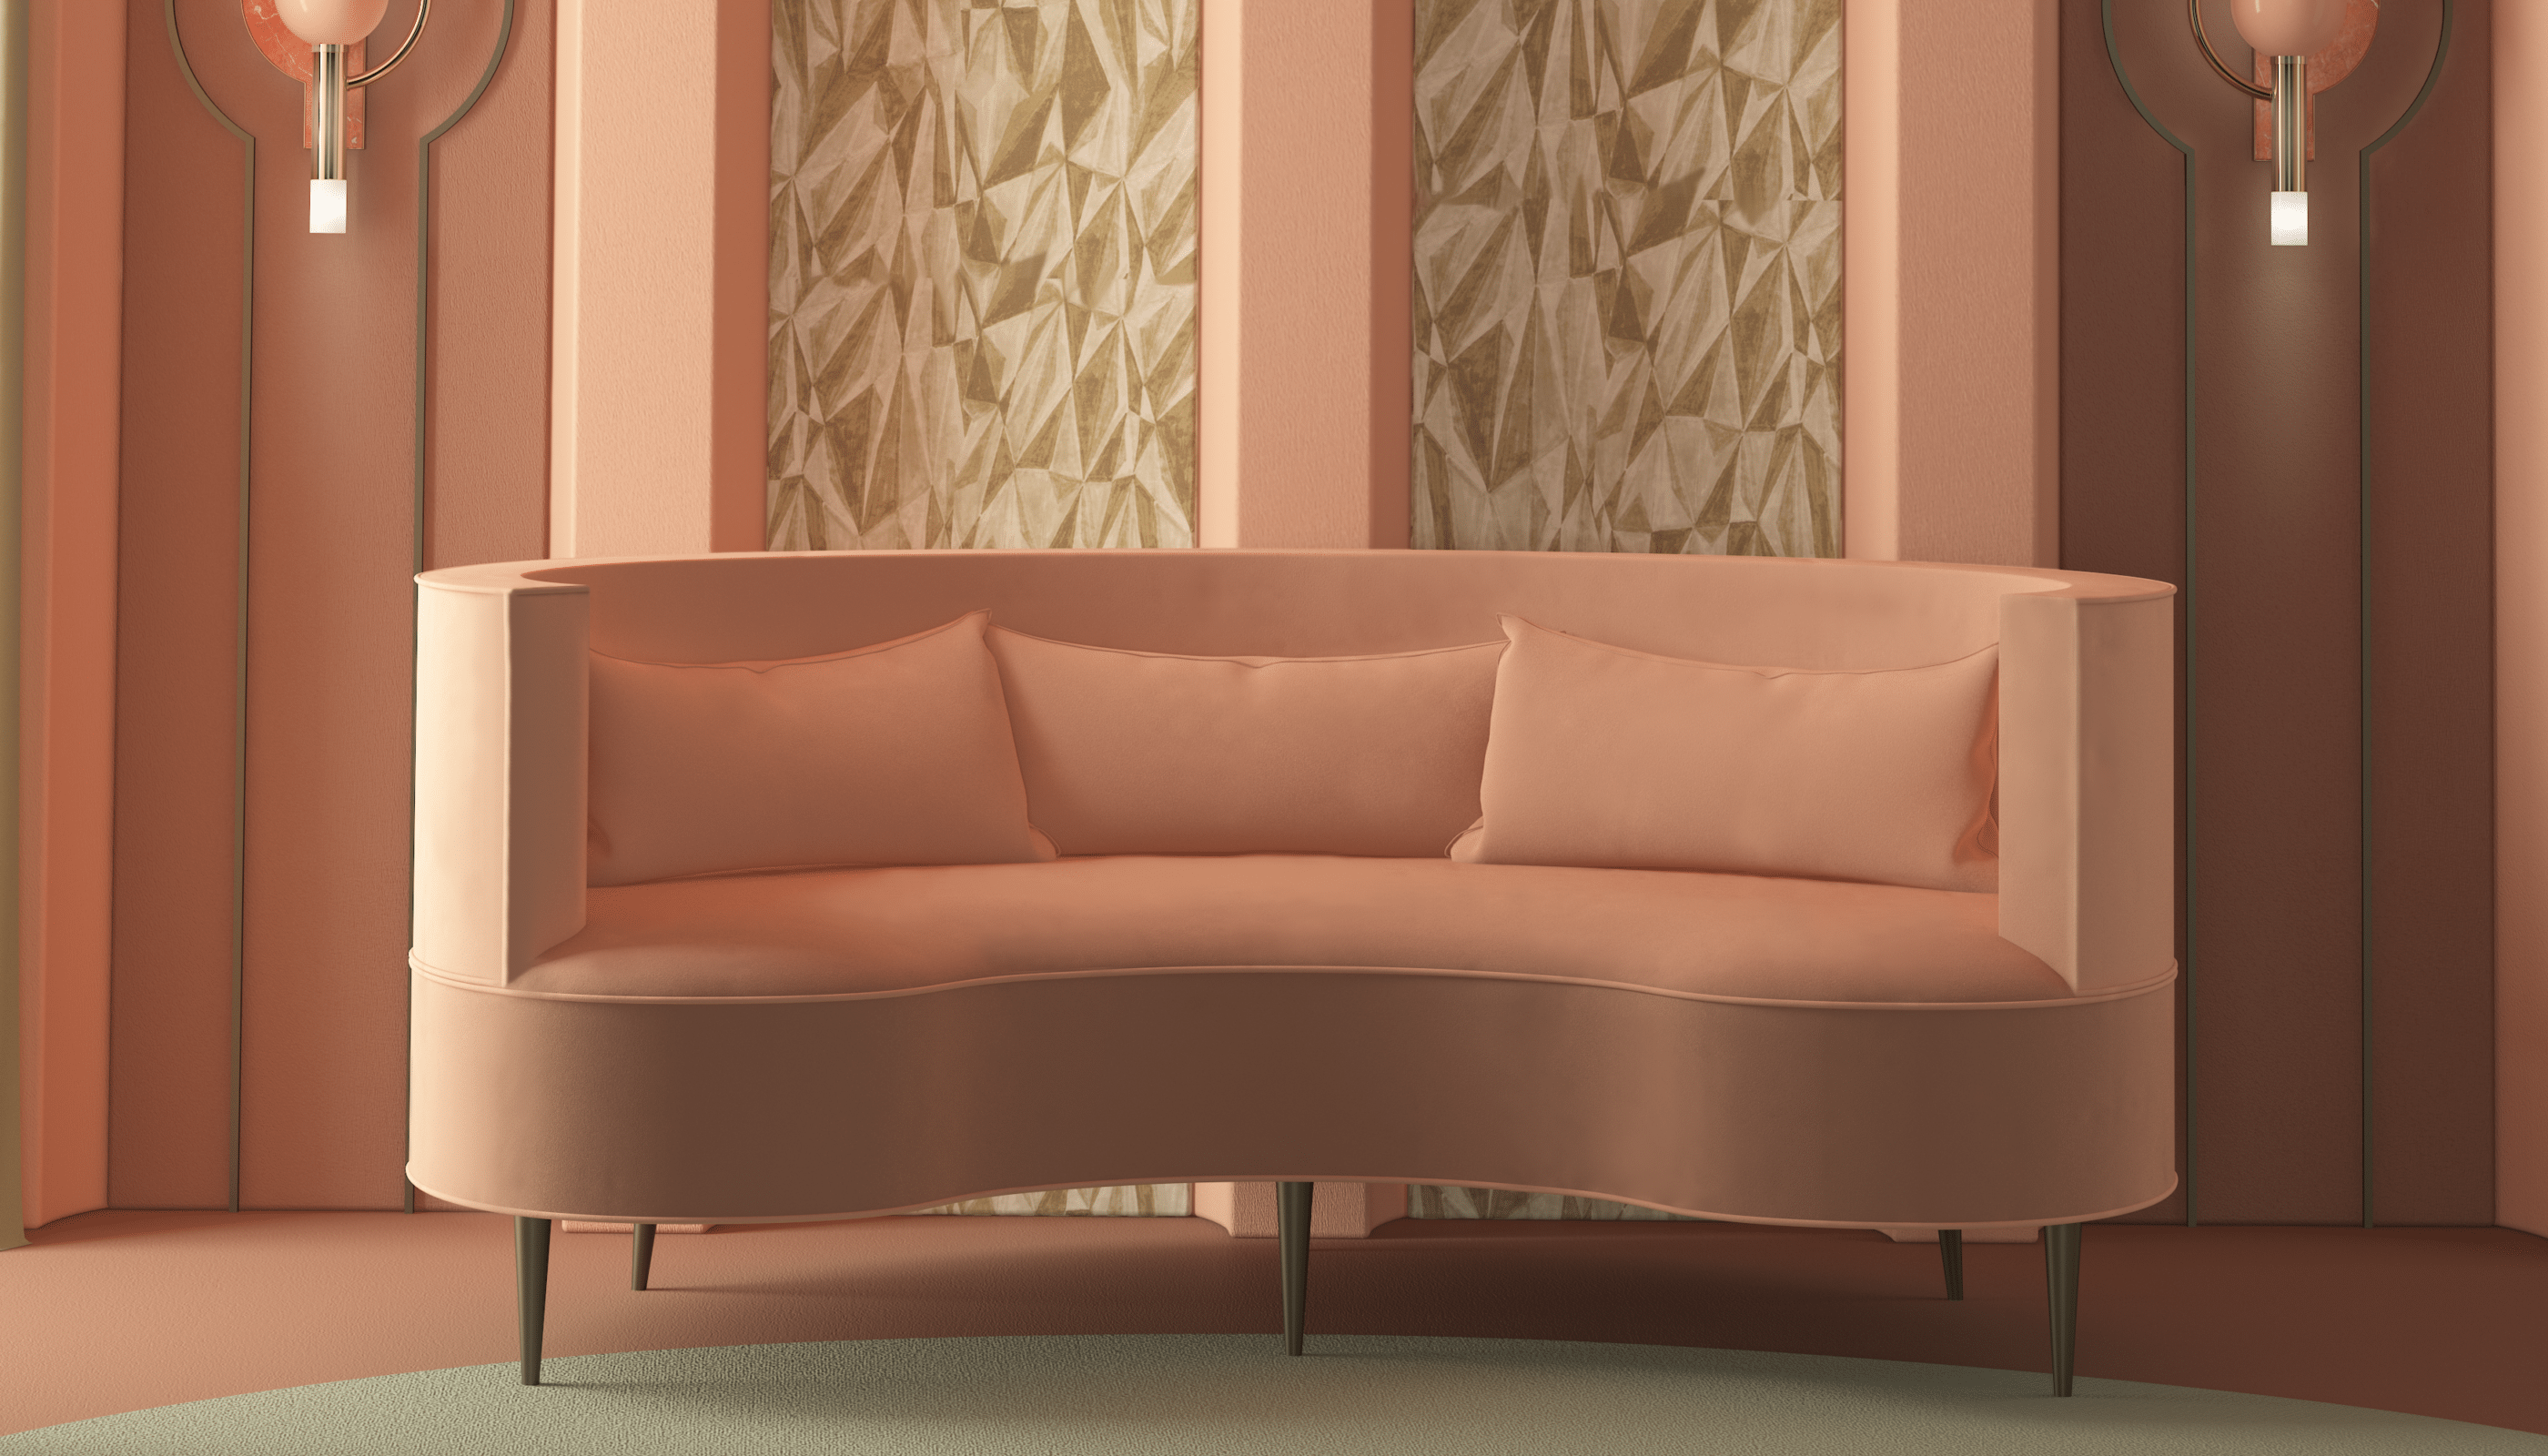 Curved Sofas You'll Love - Margret Twin Seat